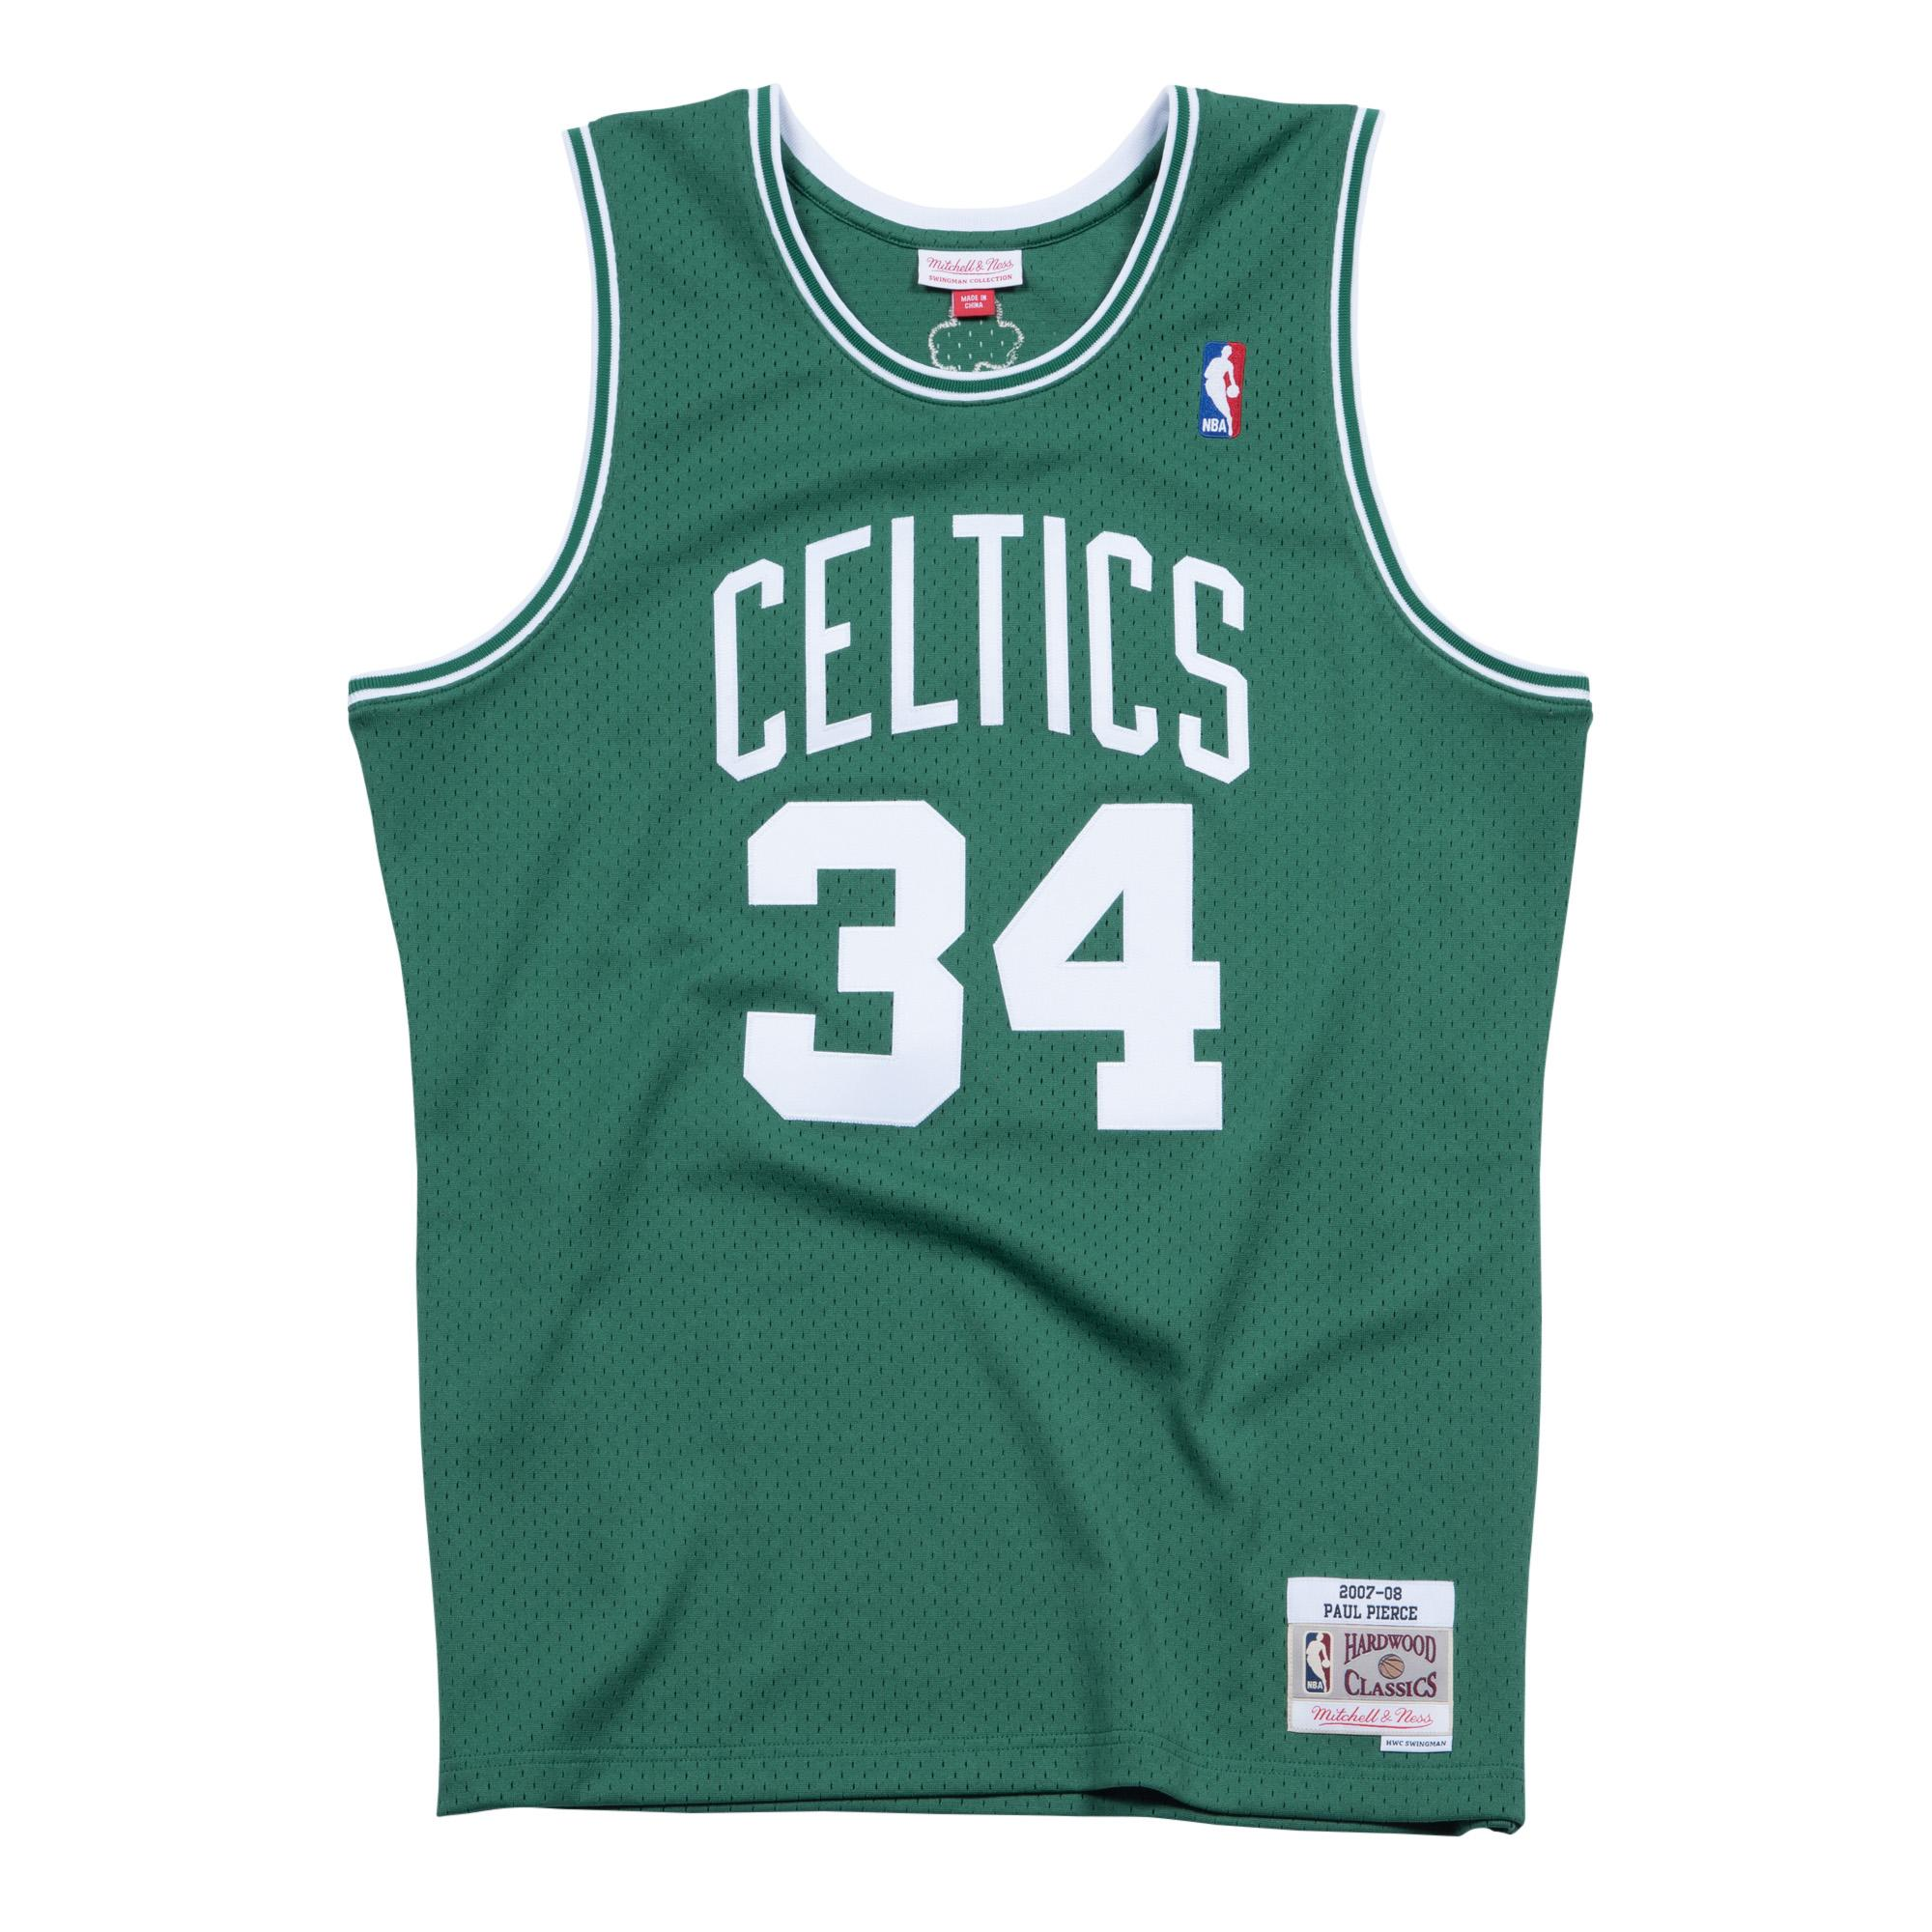 separation shoes a0625 d7b21 Mitchell & Ness | Paul Pierce Boston Celtics 2007-08 Road ...